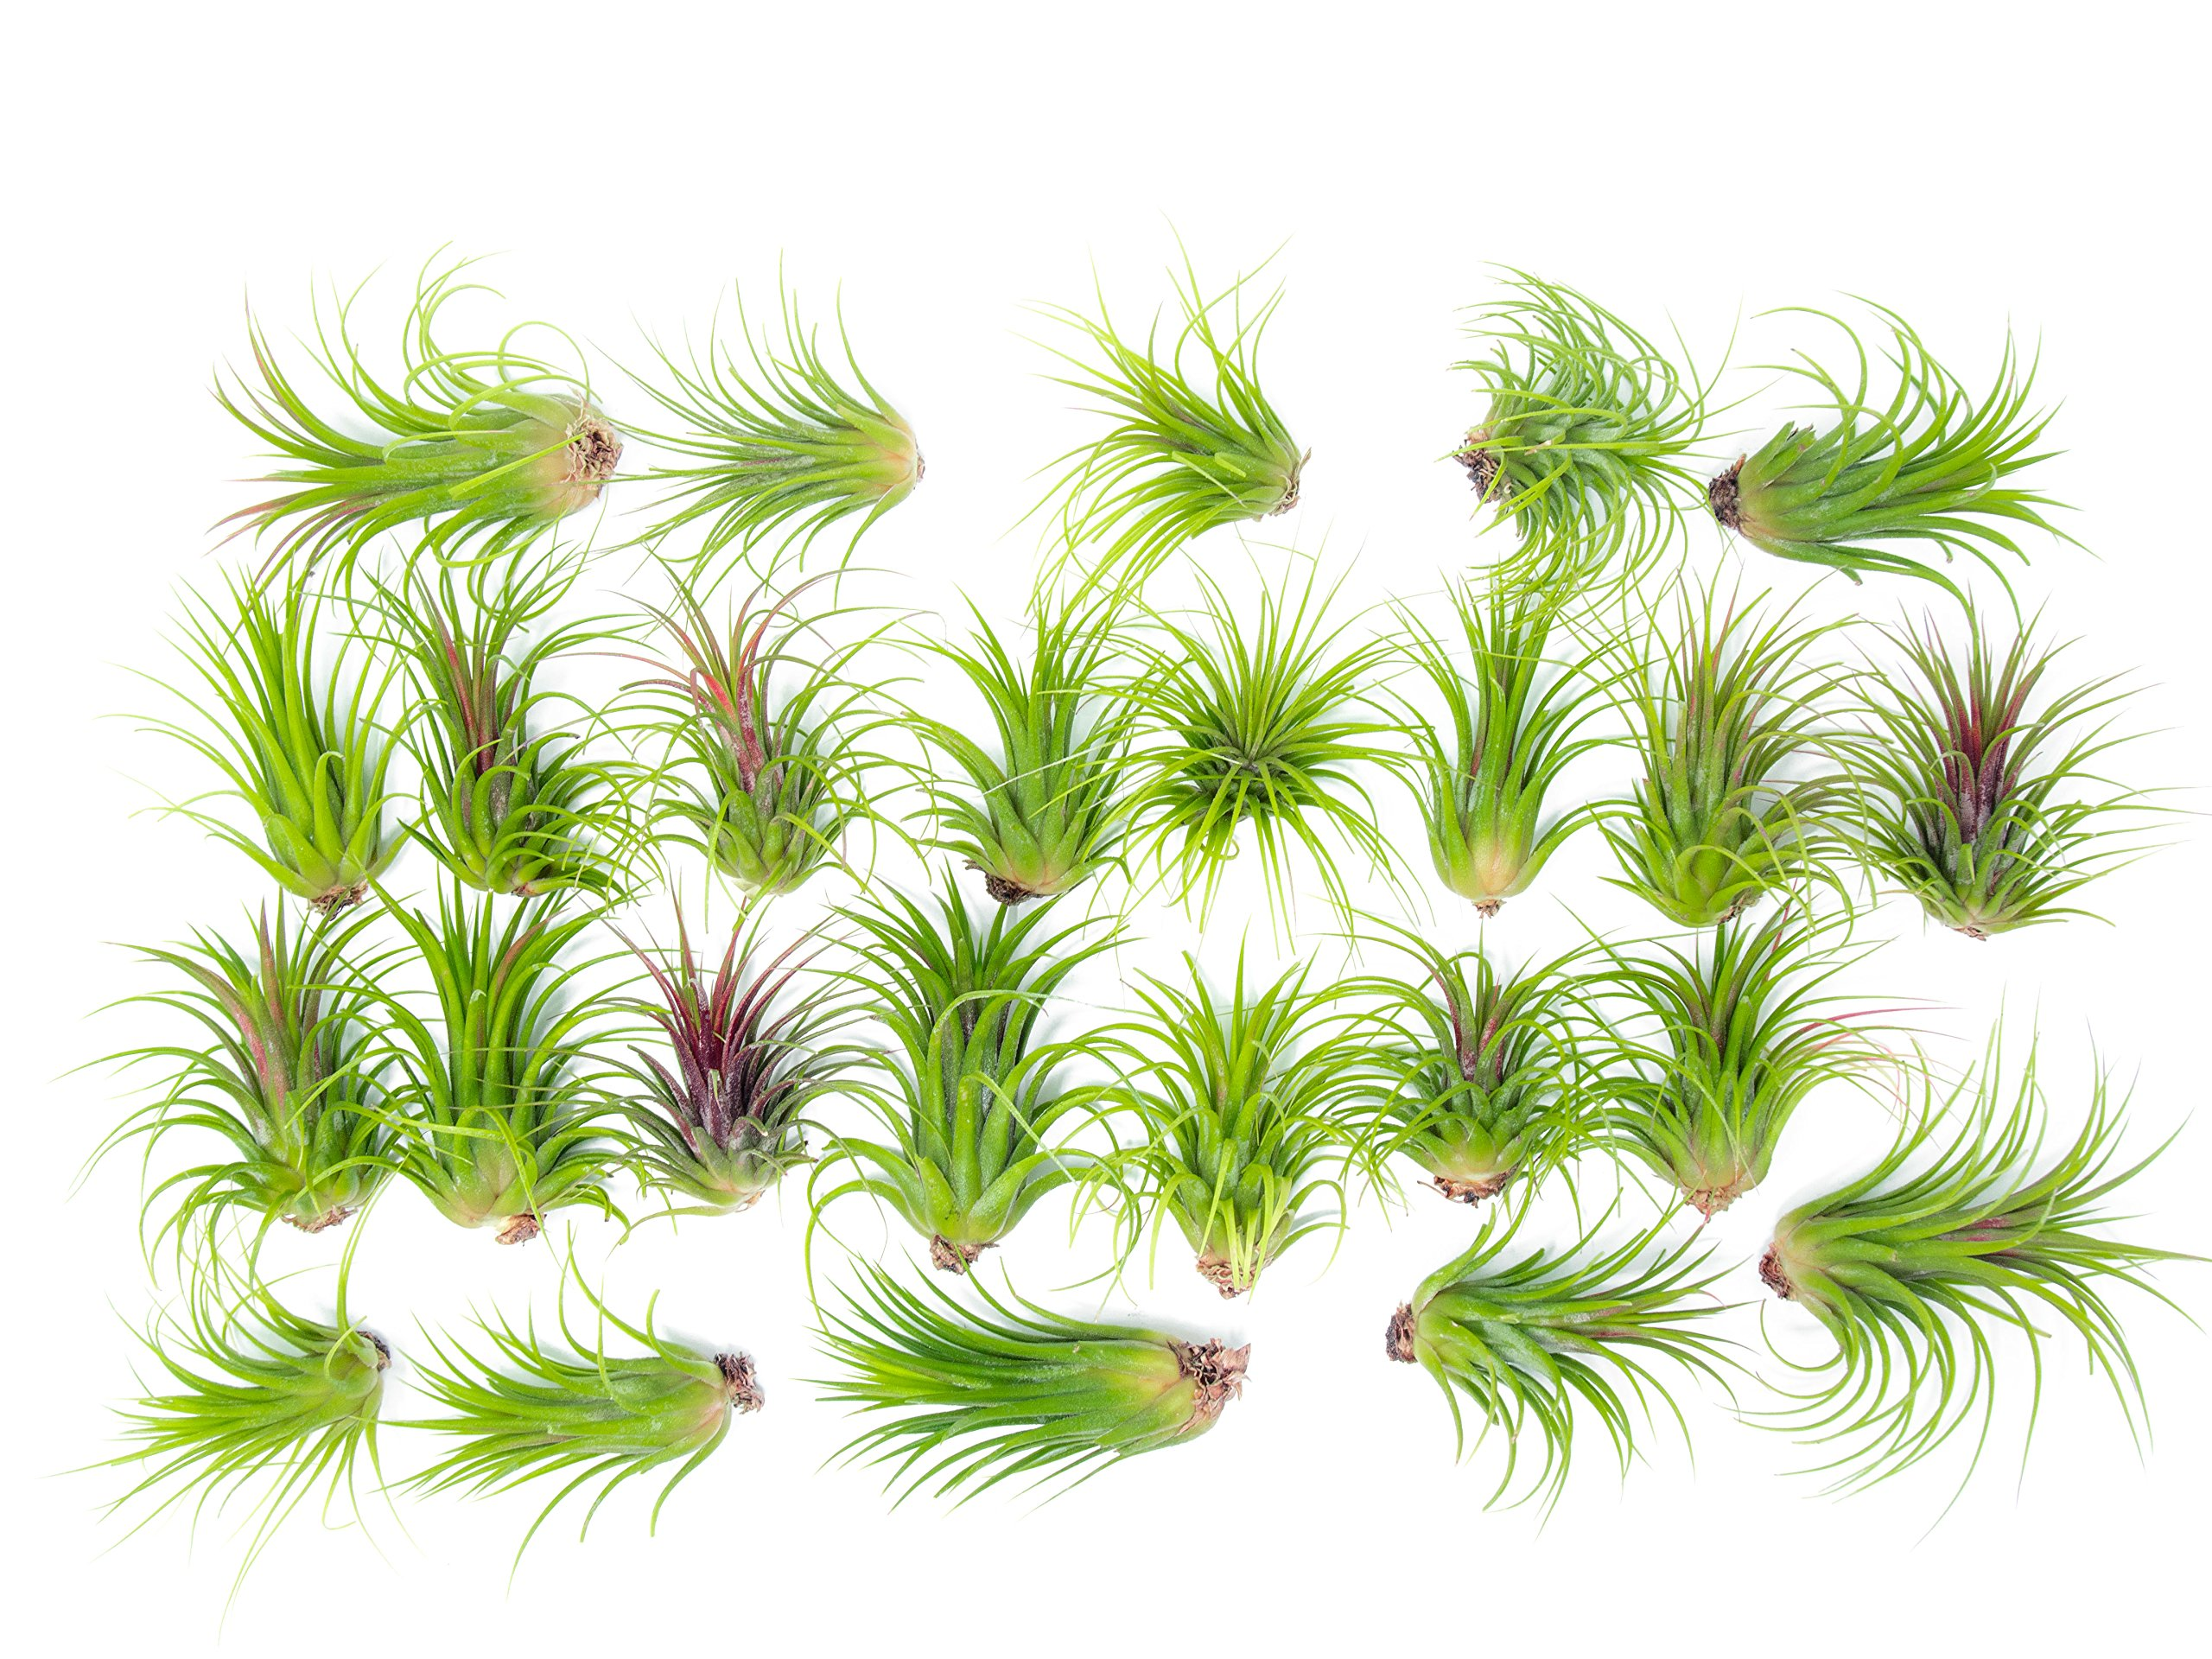 25 Large Ionantha Tillandsia Air Plant Pack - Each 2 to 3.5 Inches Long - Live Tropical House Plants for Home Decor - Indoor Terrarium Air Plants by Plants for Pets